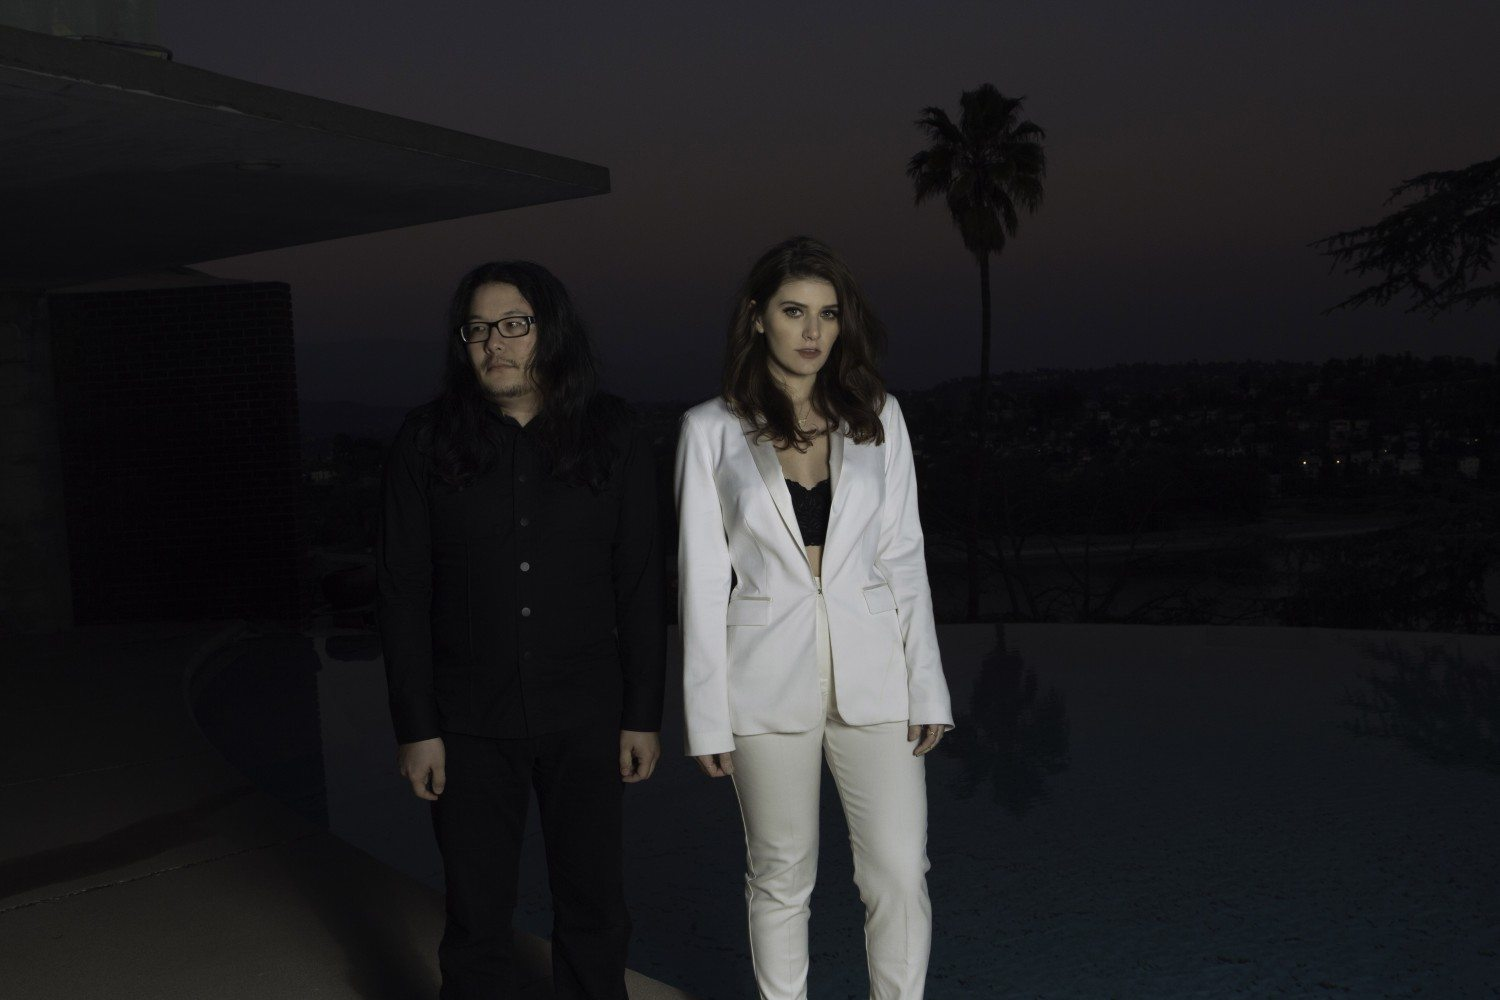 Best Coast's Bethany Cosentino on playing Central Park Jul. 13 with The Go-Go's, New York City, writing and more